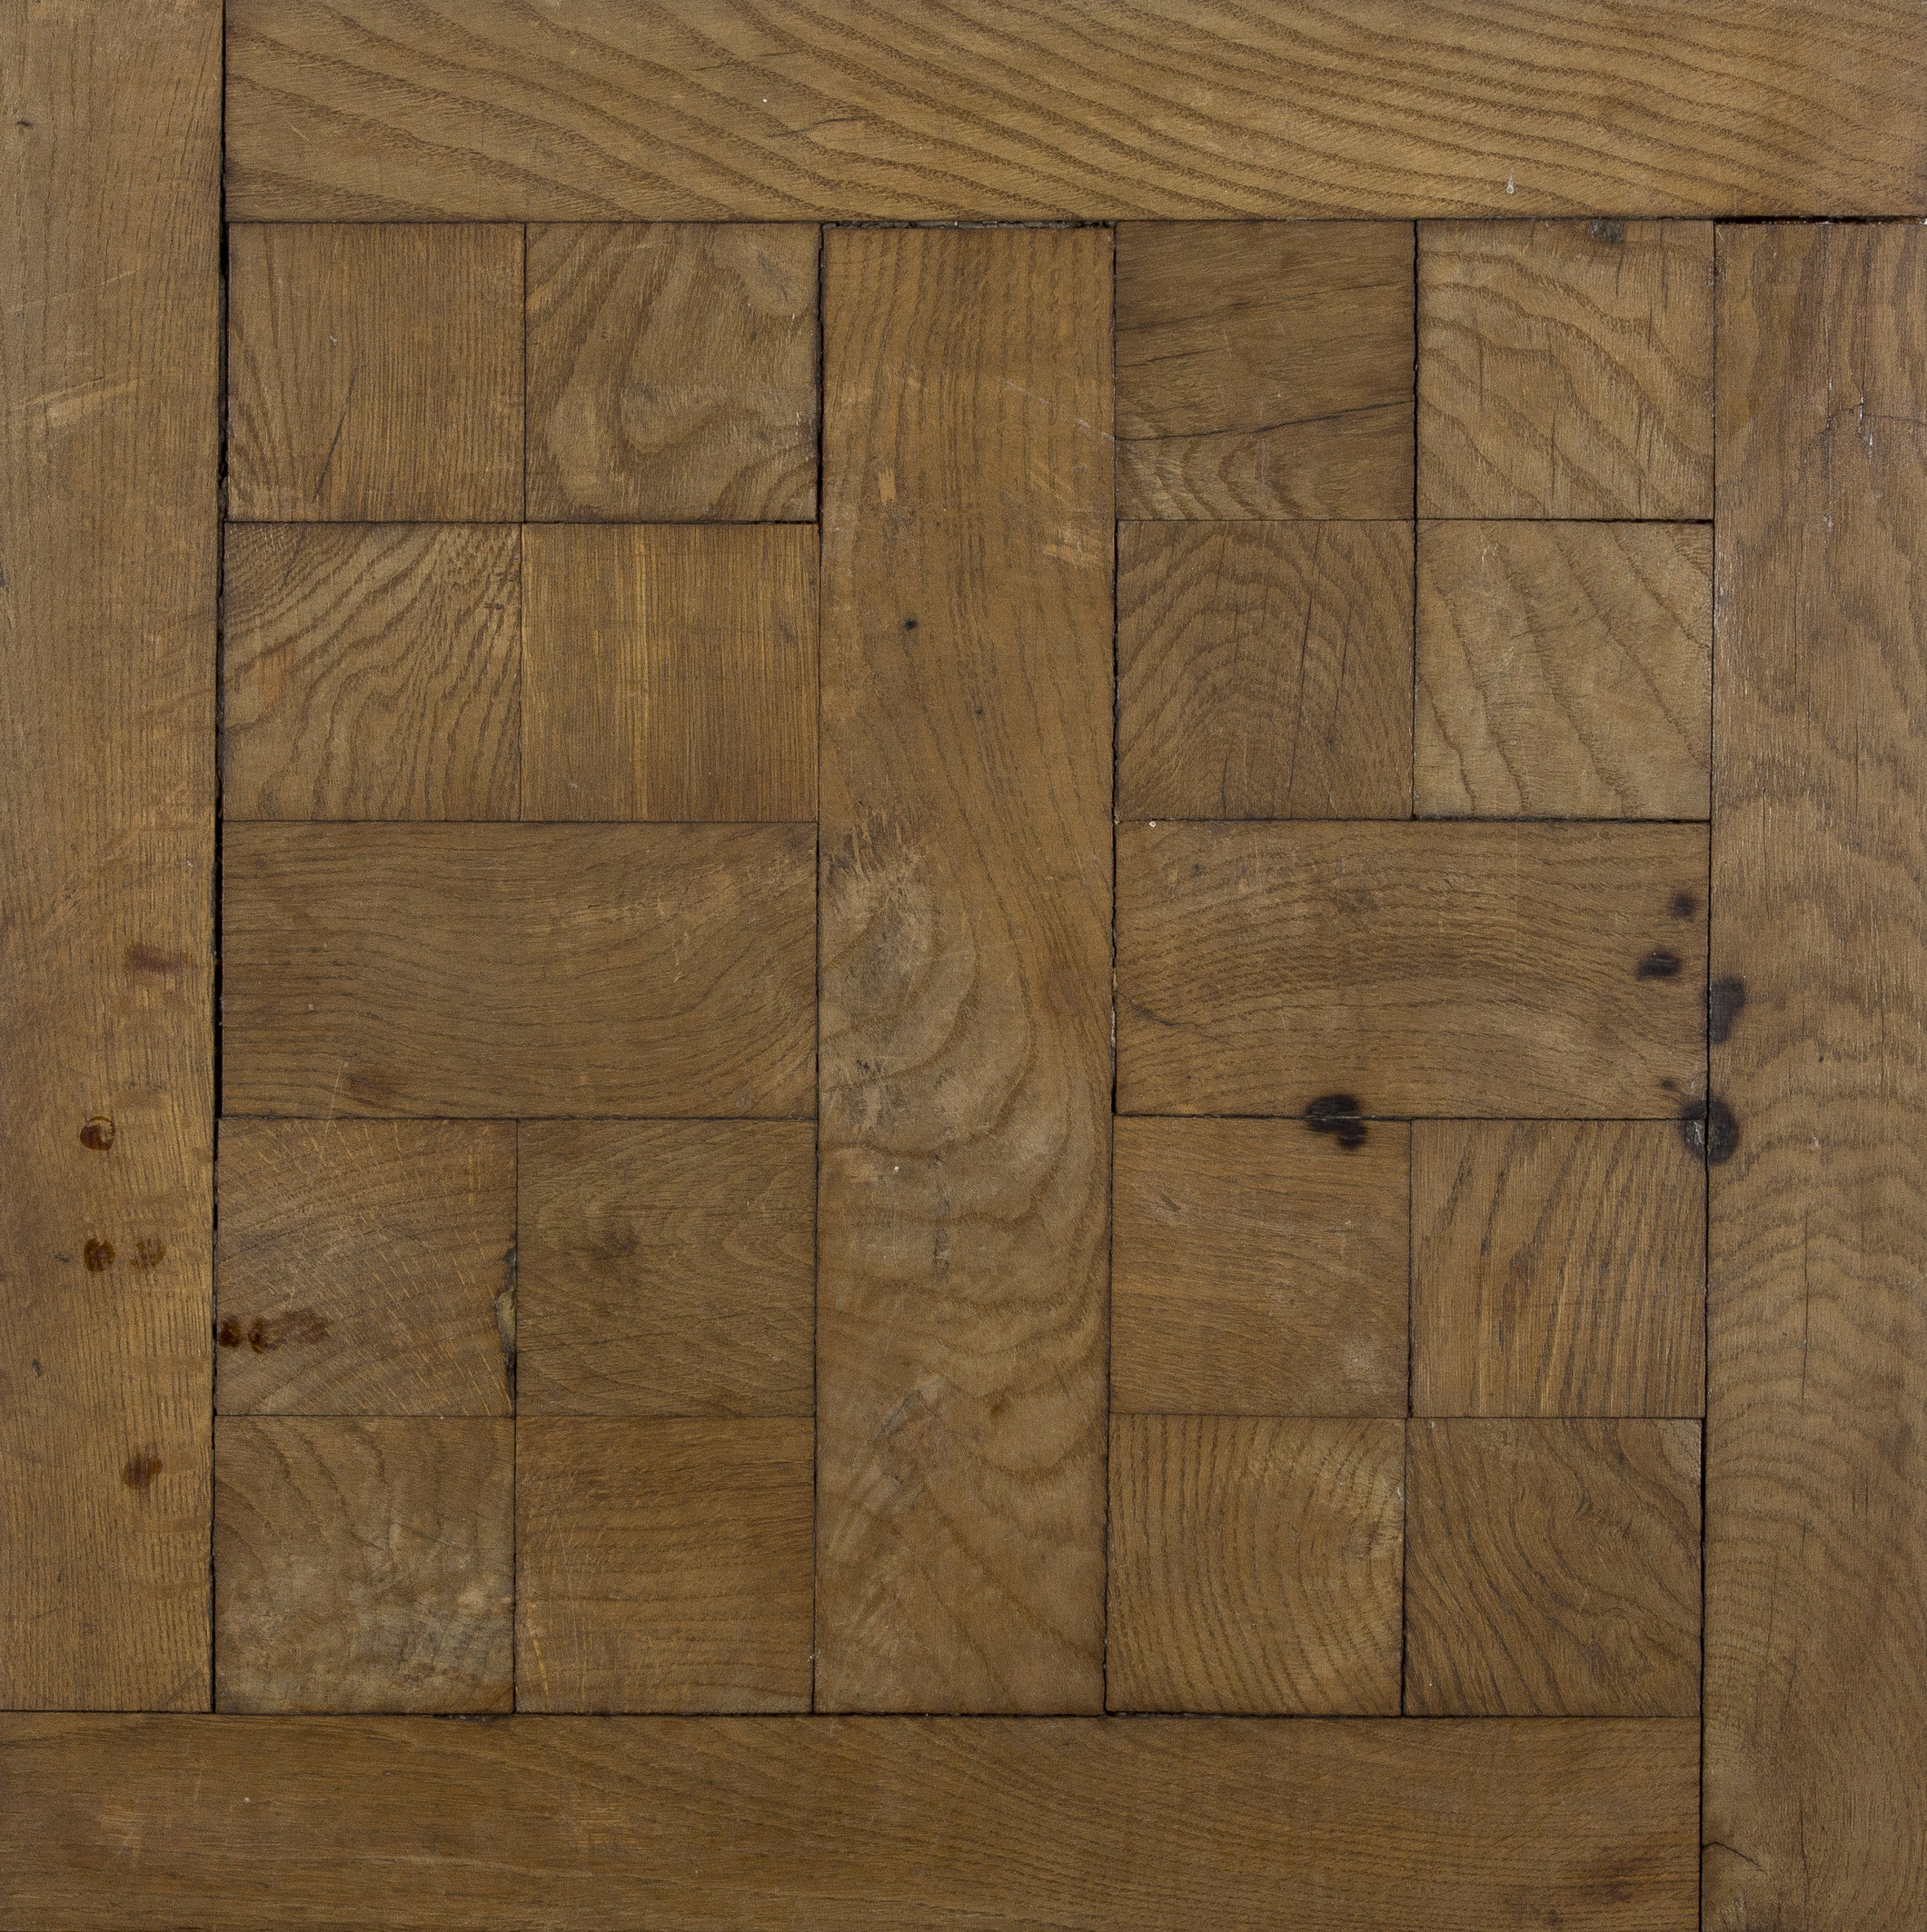 20170622-antique-parquet.com-9.jpg